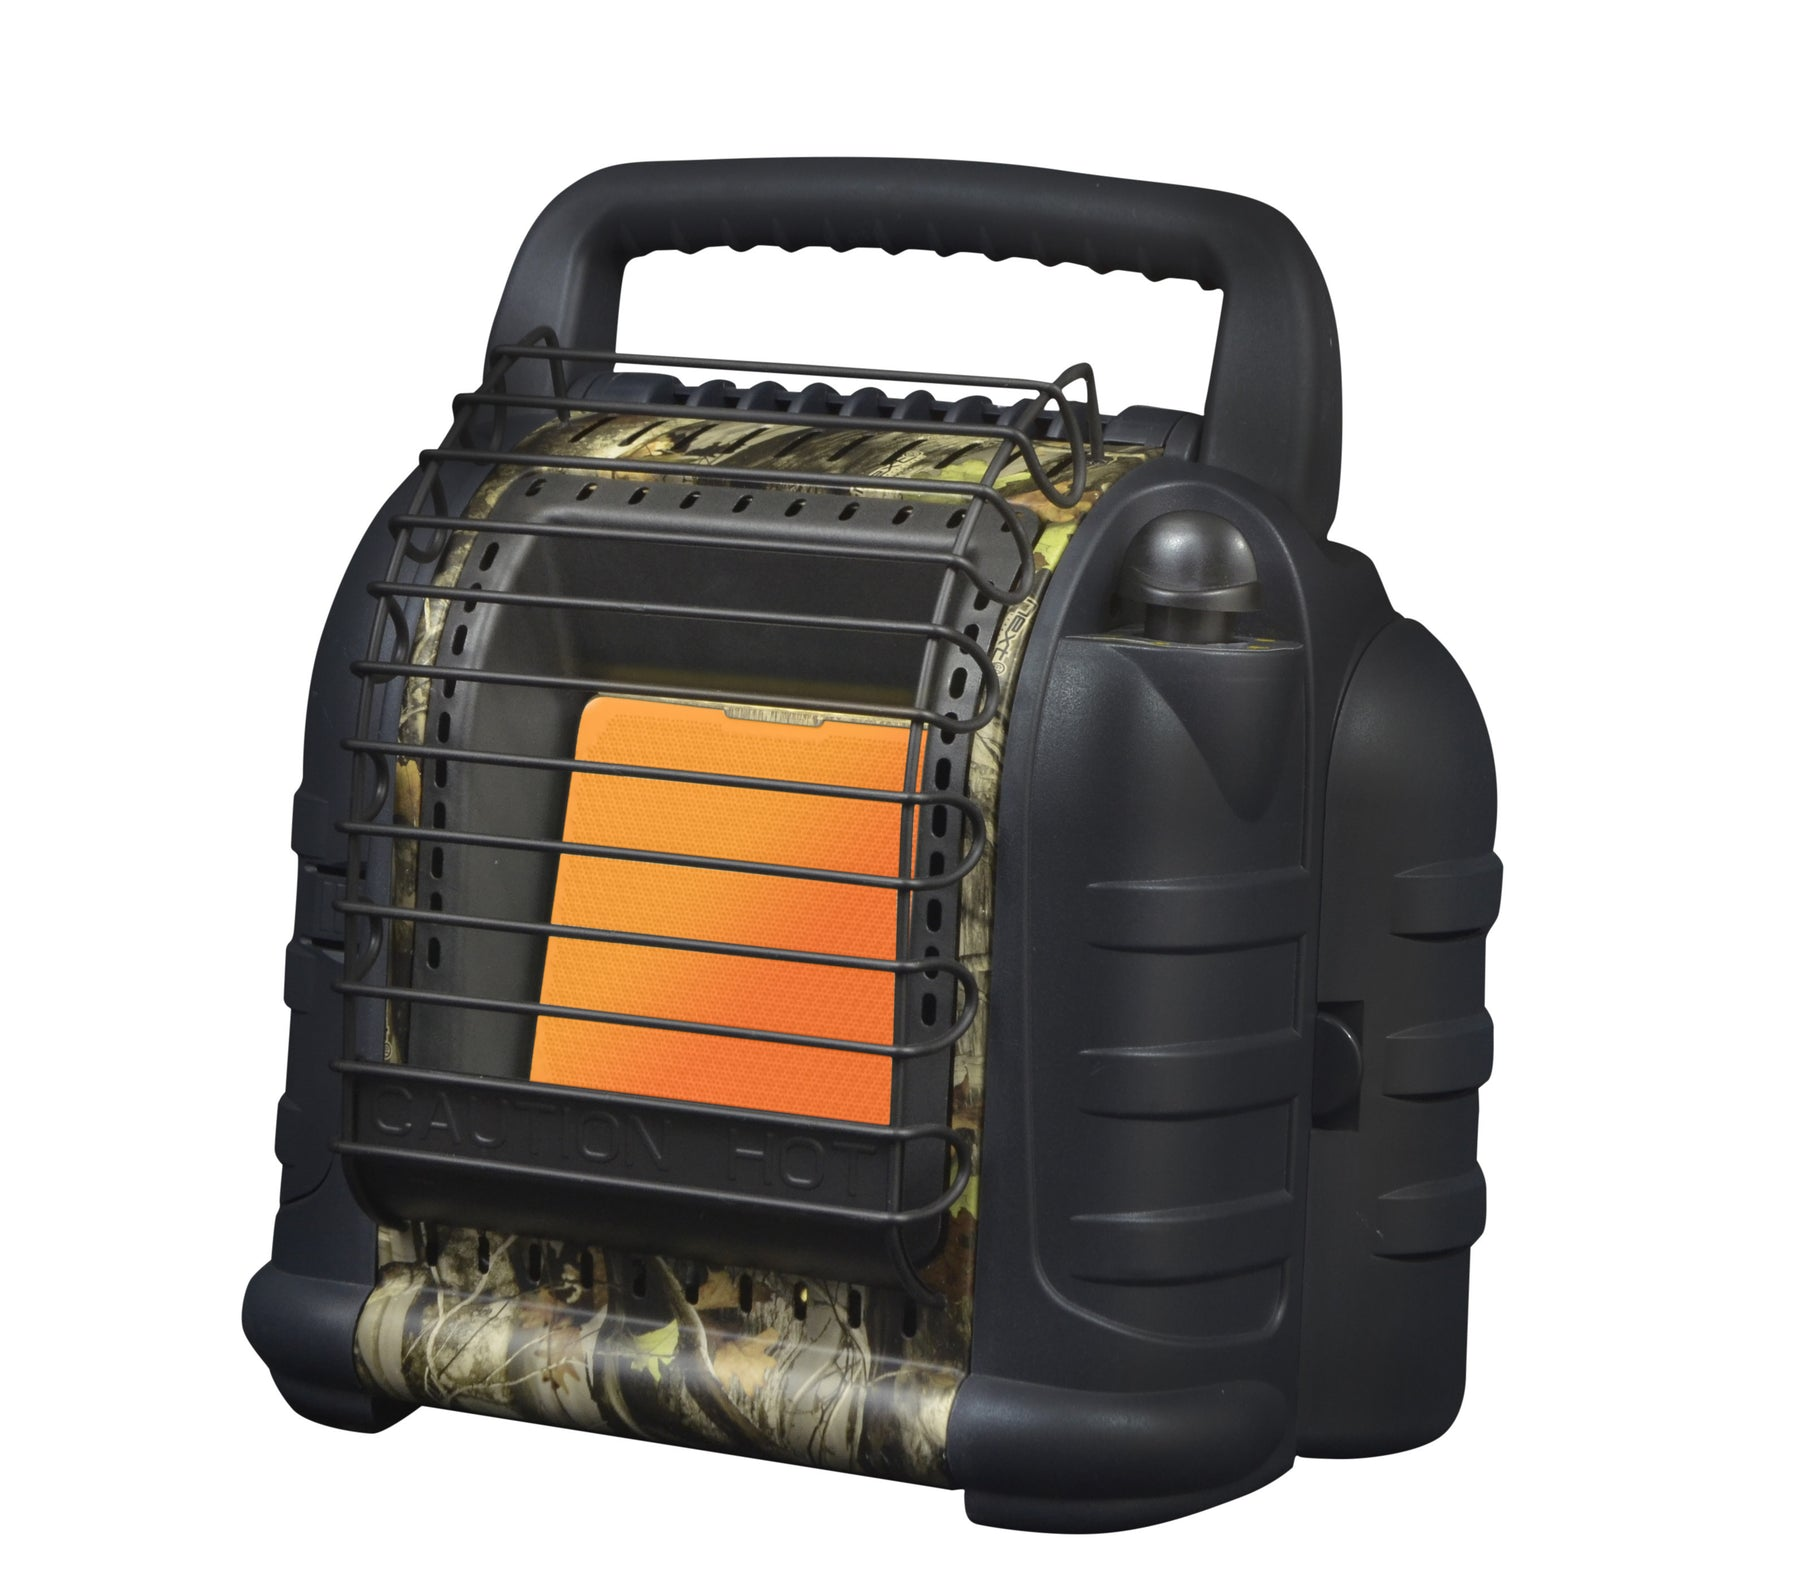 Mr. Heater Hunting Buddy Heater Heating Mr Heater- The Cabin Depot Off-Grid Off Grid Living Solutions Cabin Cottage Camp Solar Panel Water Heater Hunting Fishing Boats RVs Outdoors